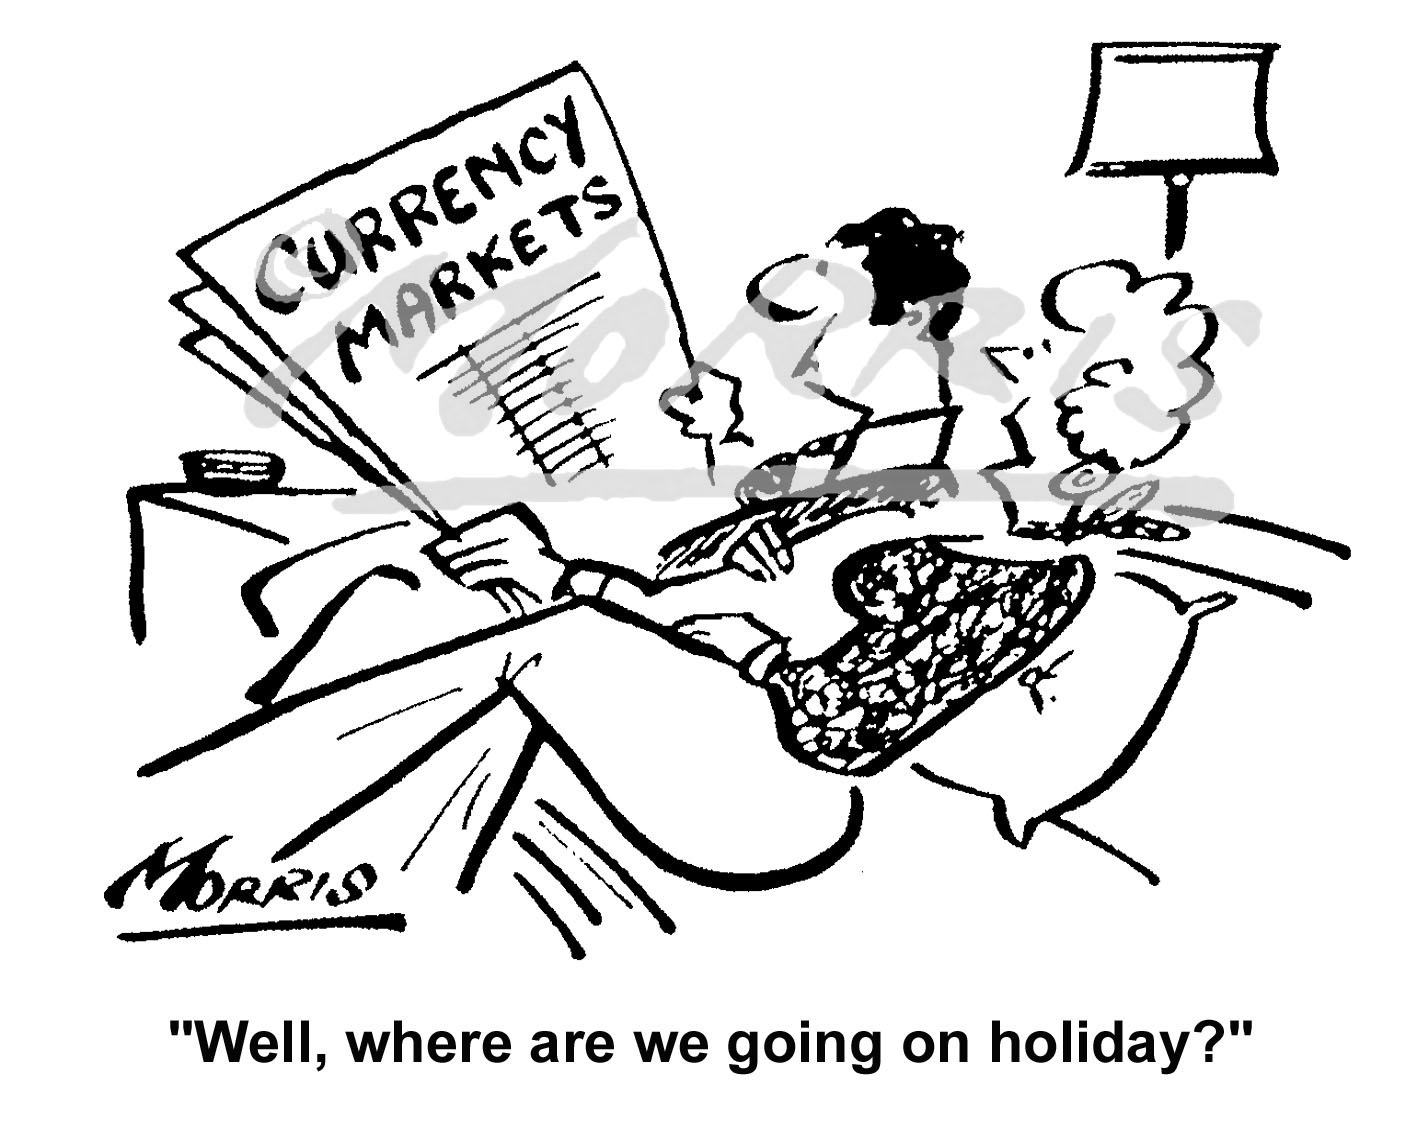 Currency markets business cartoon – Ref: 4898bw